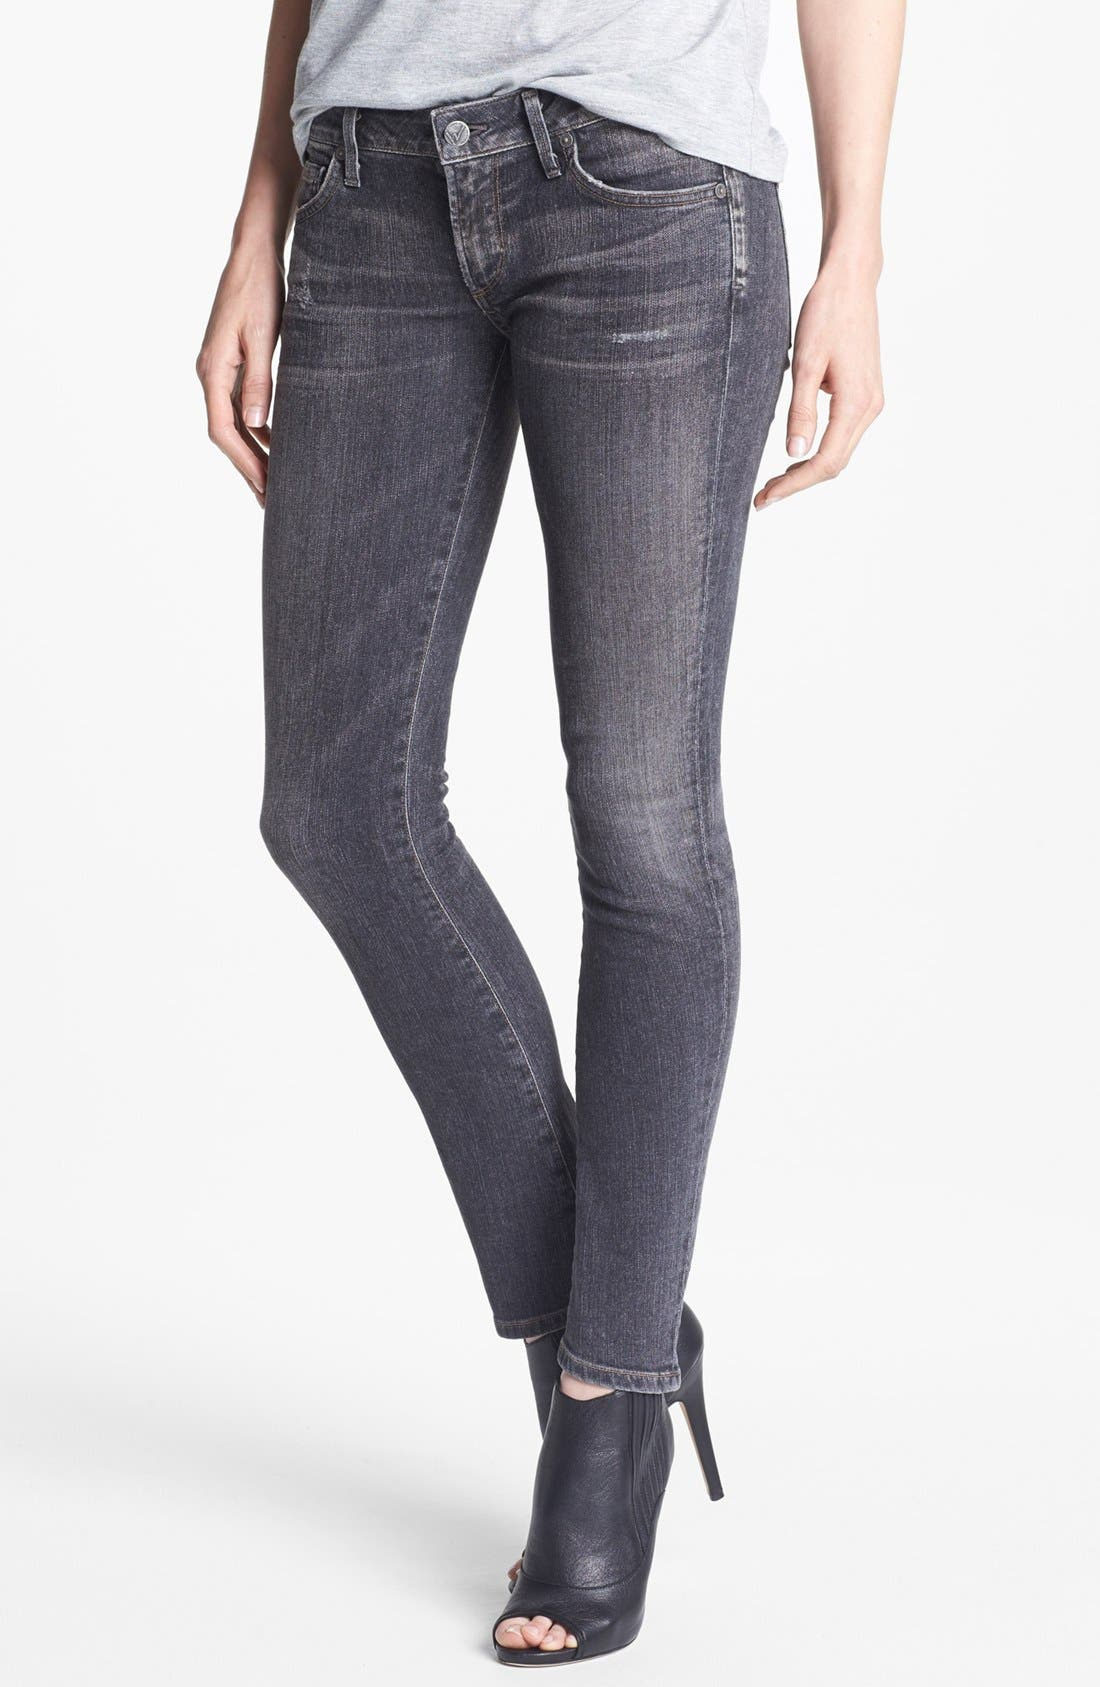 Alternate Image 1 Selected - Citizens of Humanity 'Racer' Low Rise Skinny Jeans (Black Slash)